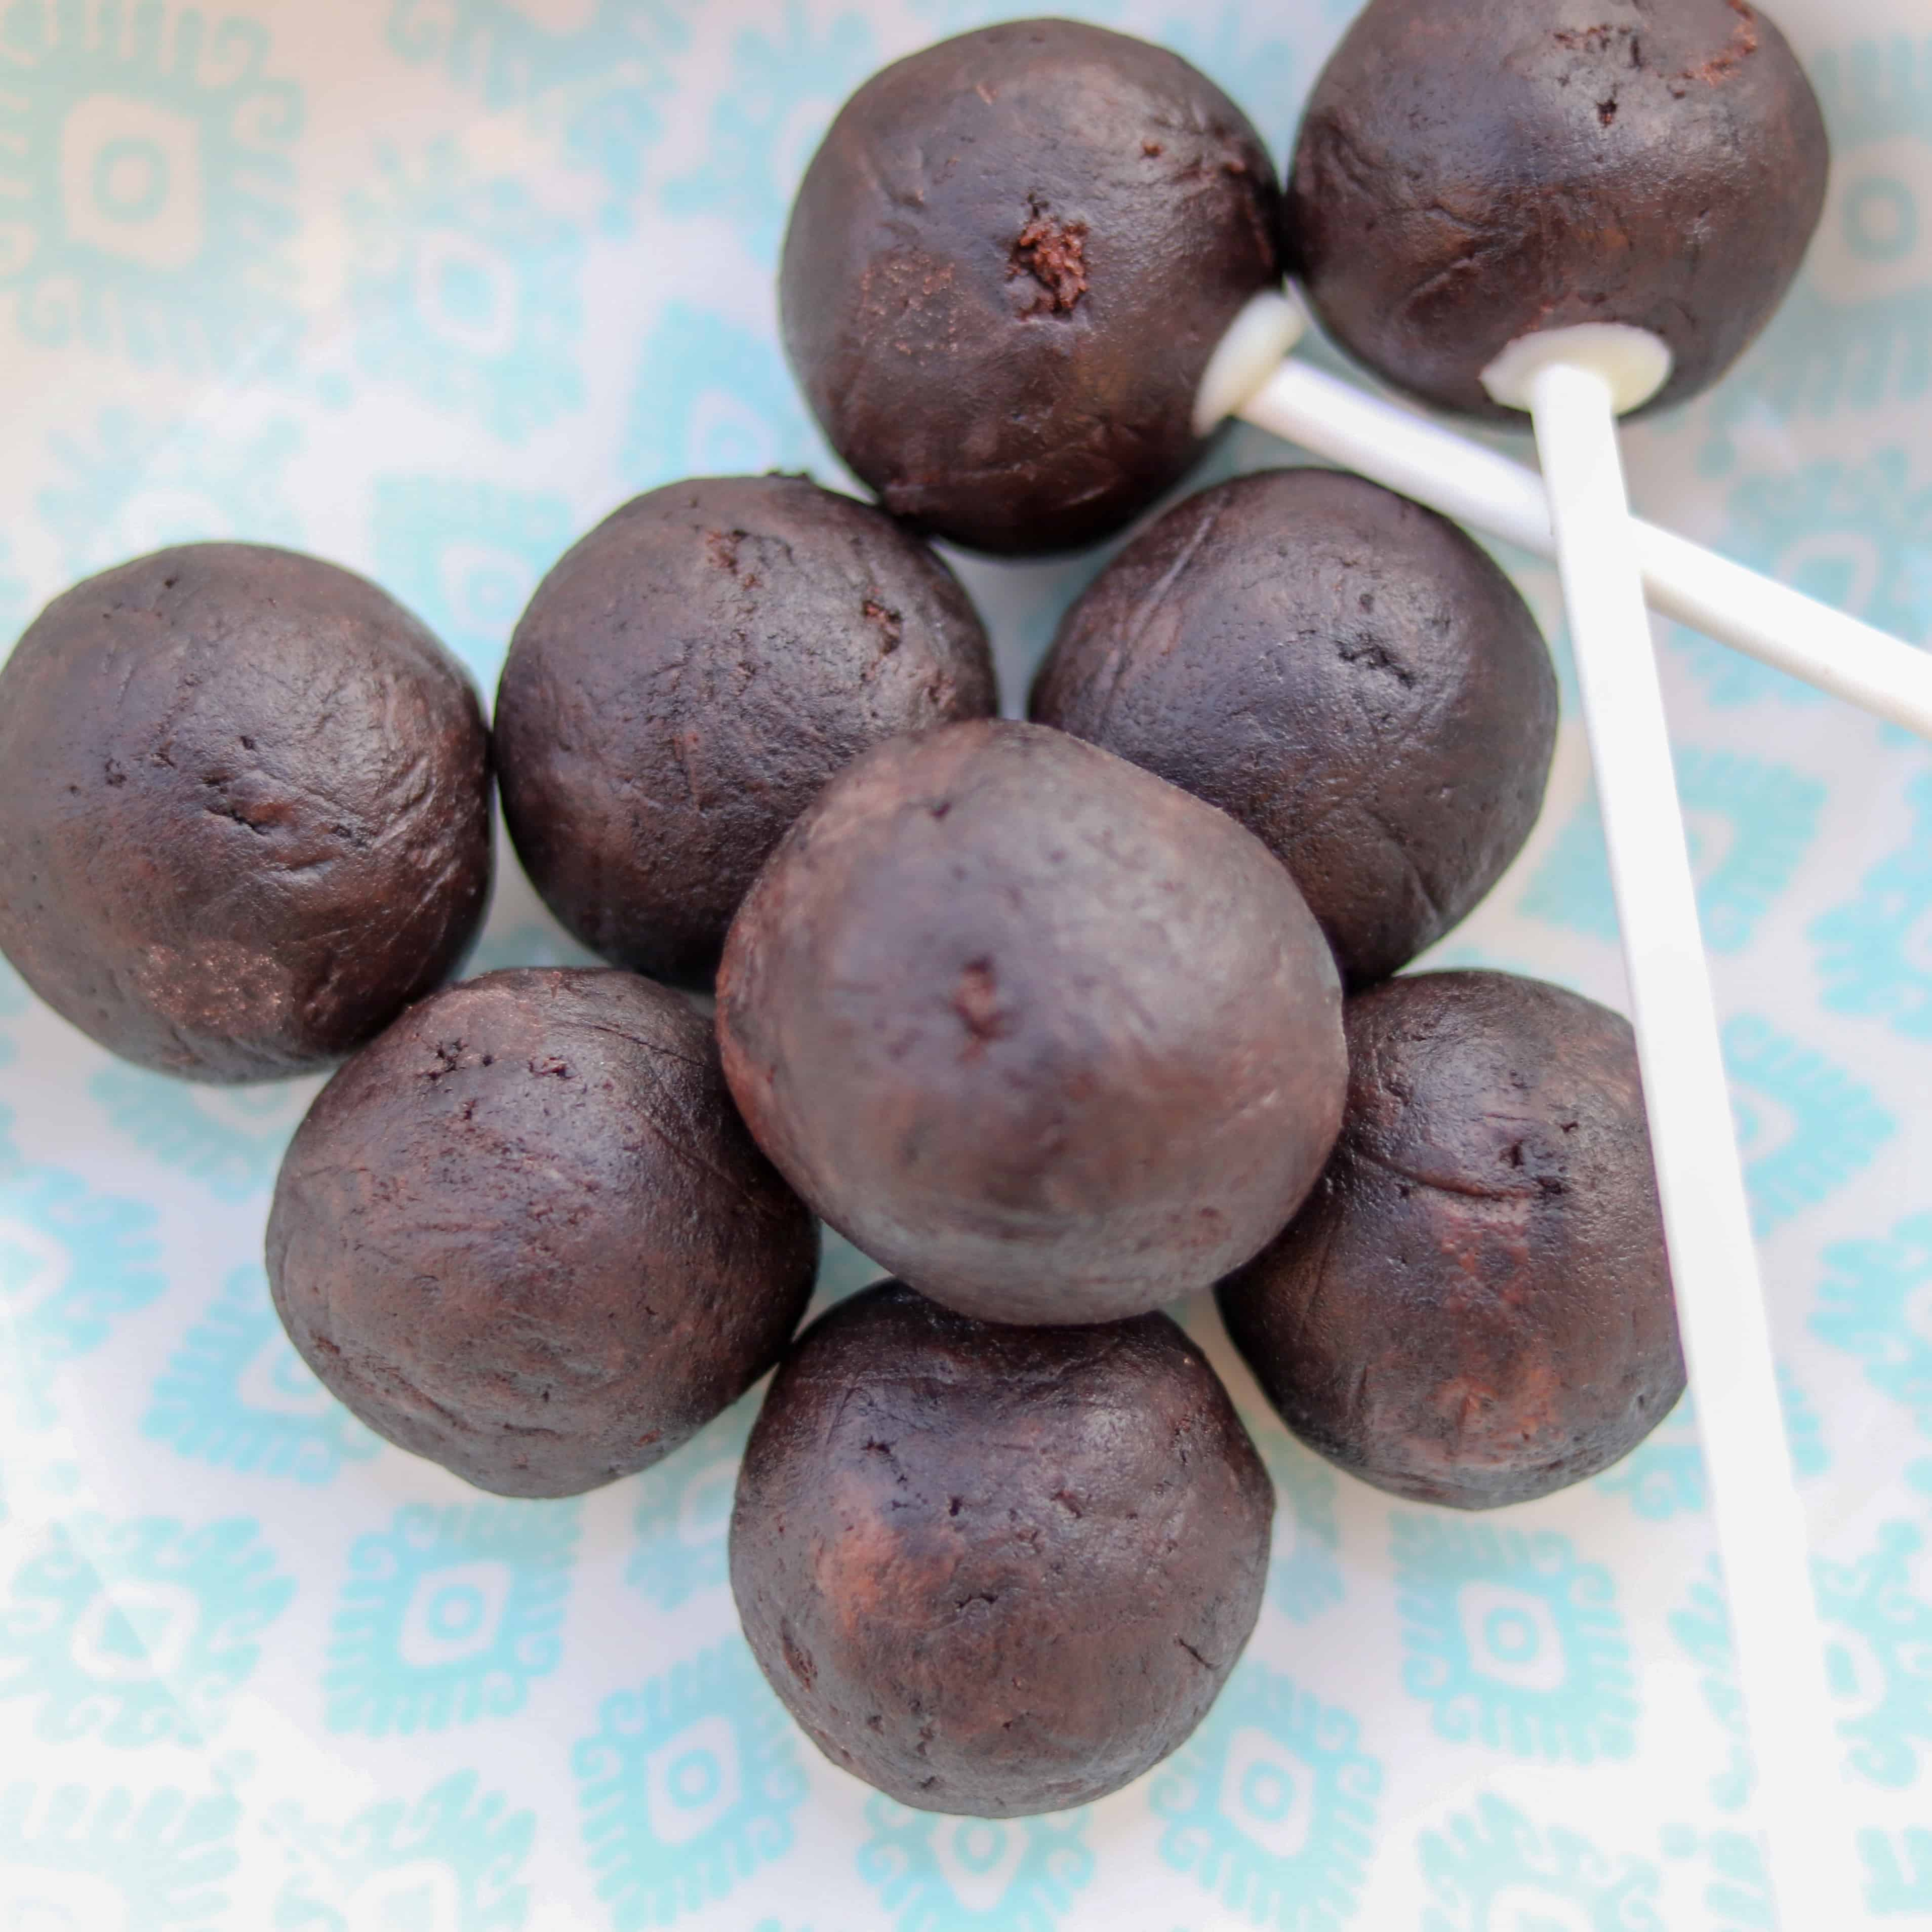 cake pops, before being coated in chocolate